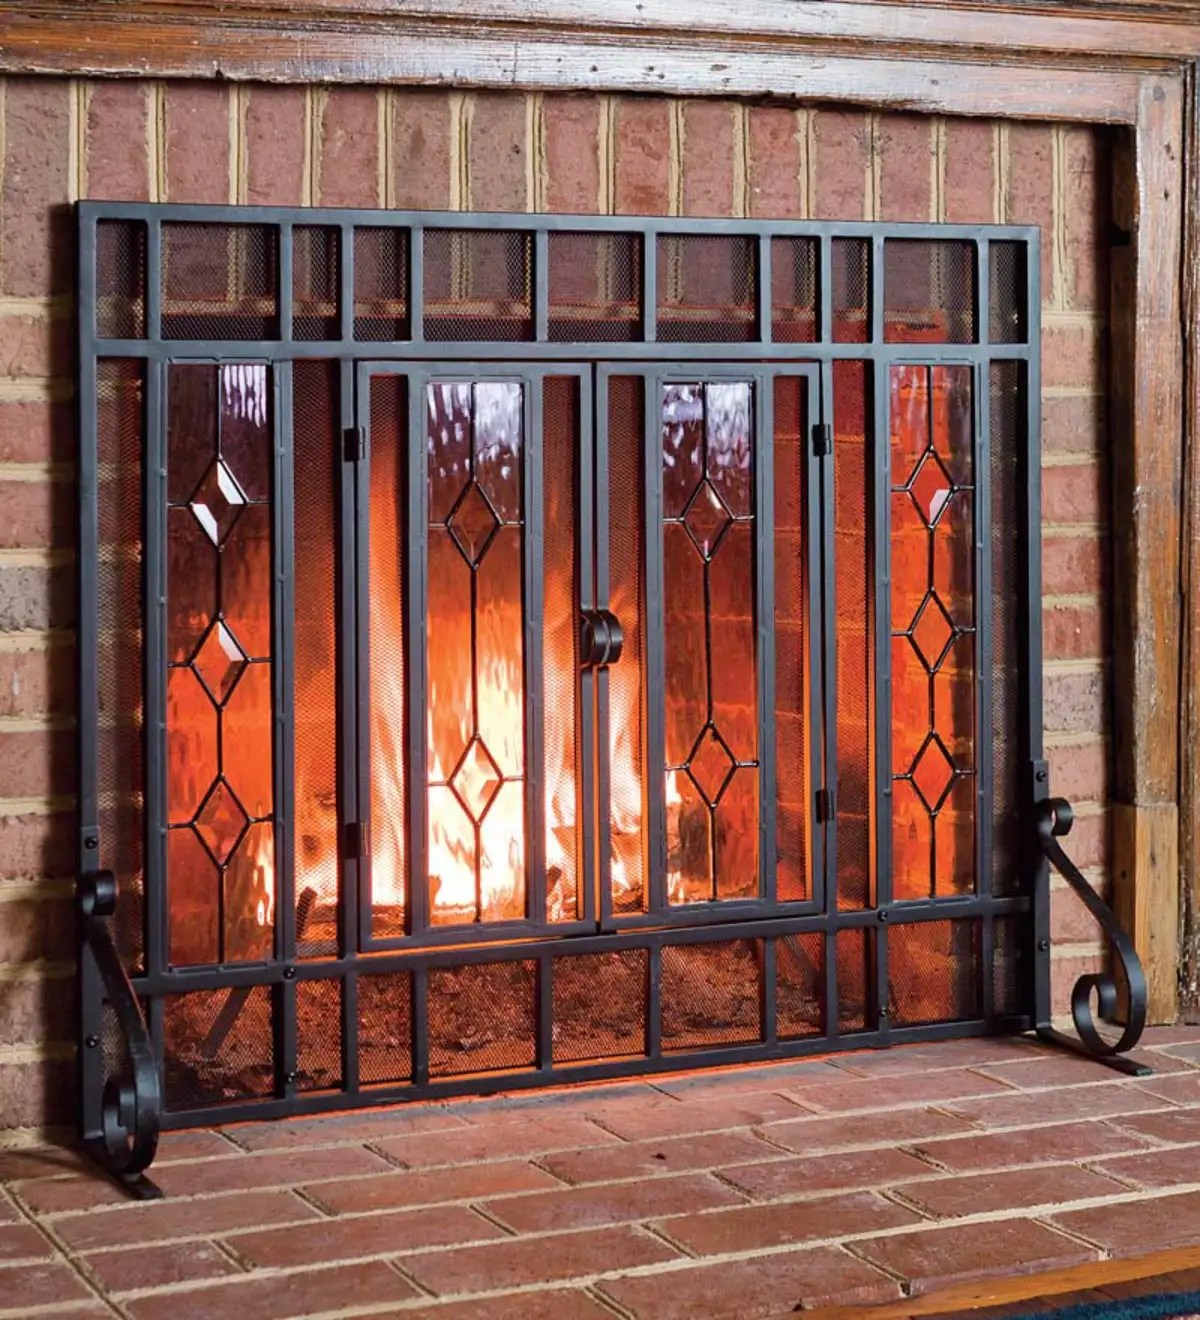 Small Fireplace Screens Under 30 Wide Beveled Glass Diamond Fireplace Screens With Powder Coated Tubular